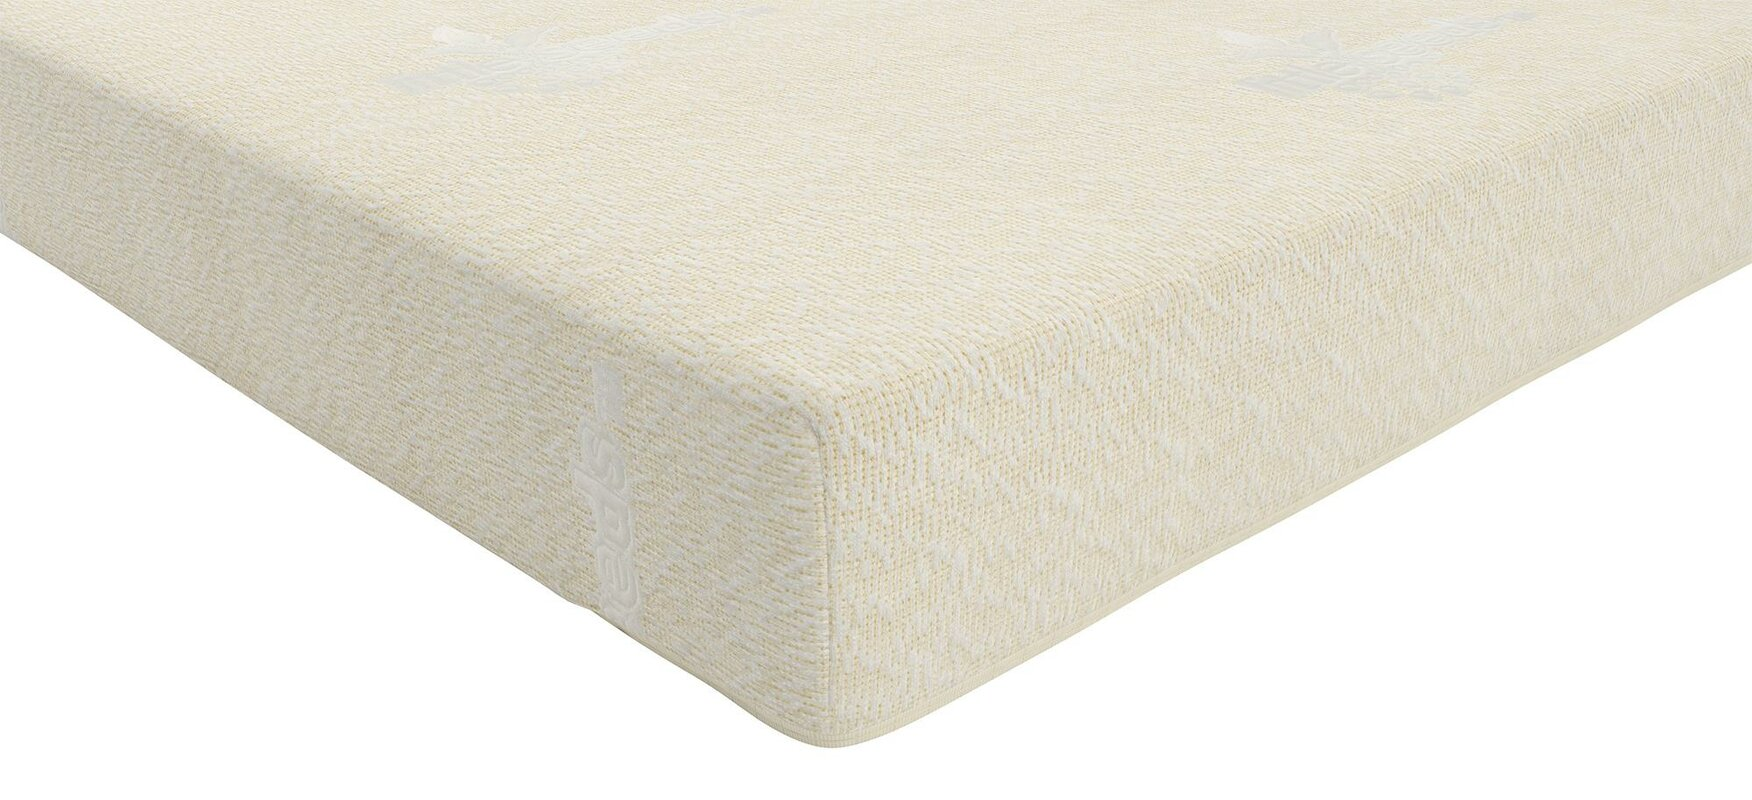 crib foam and com mattress ip toddler premium graco baff walmart